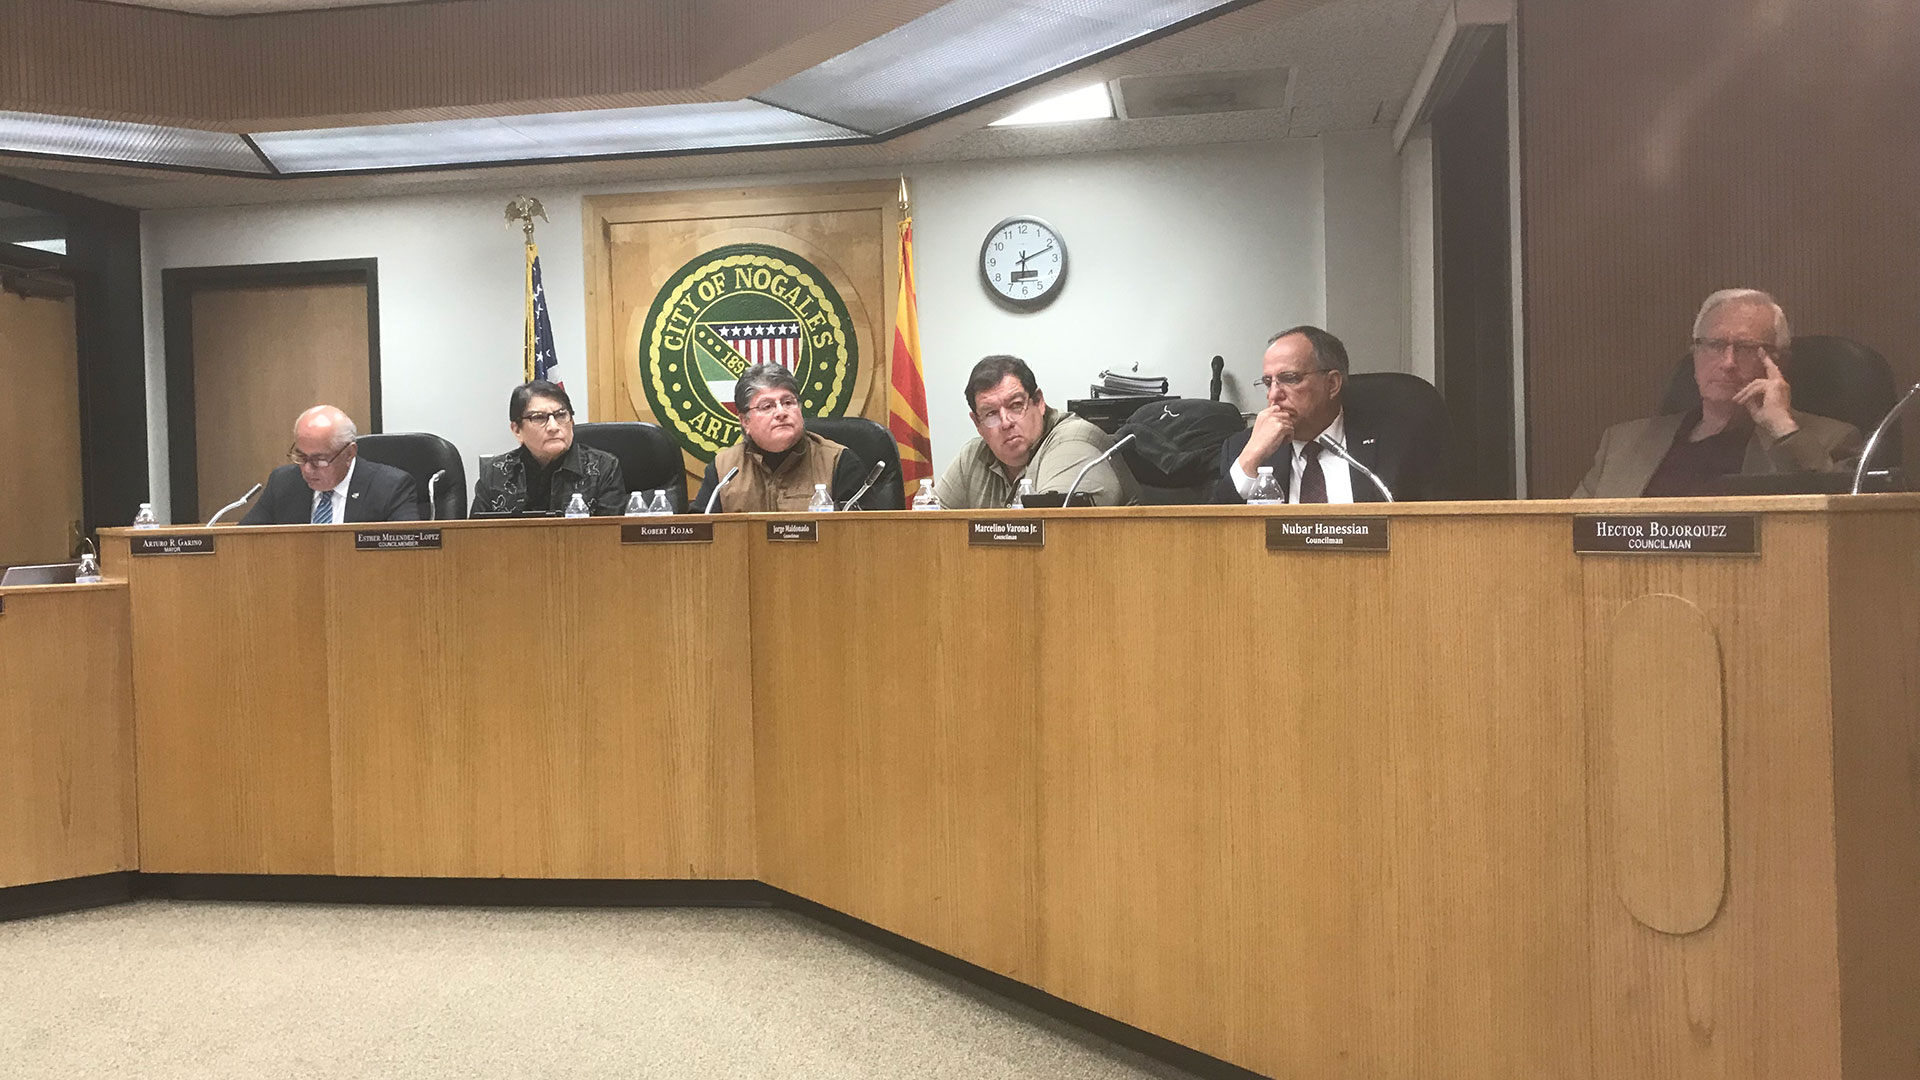 Nogales City Council votes unanimously to demand the federal government remove concertina wire from the border fence in Nogales.  (February 6, 2019)